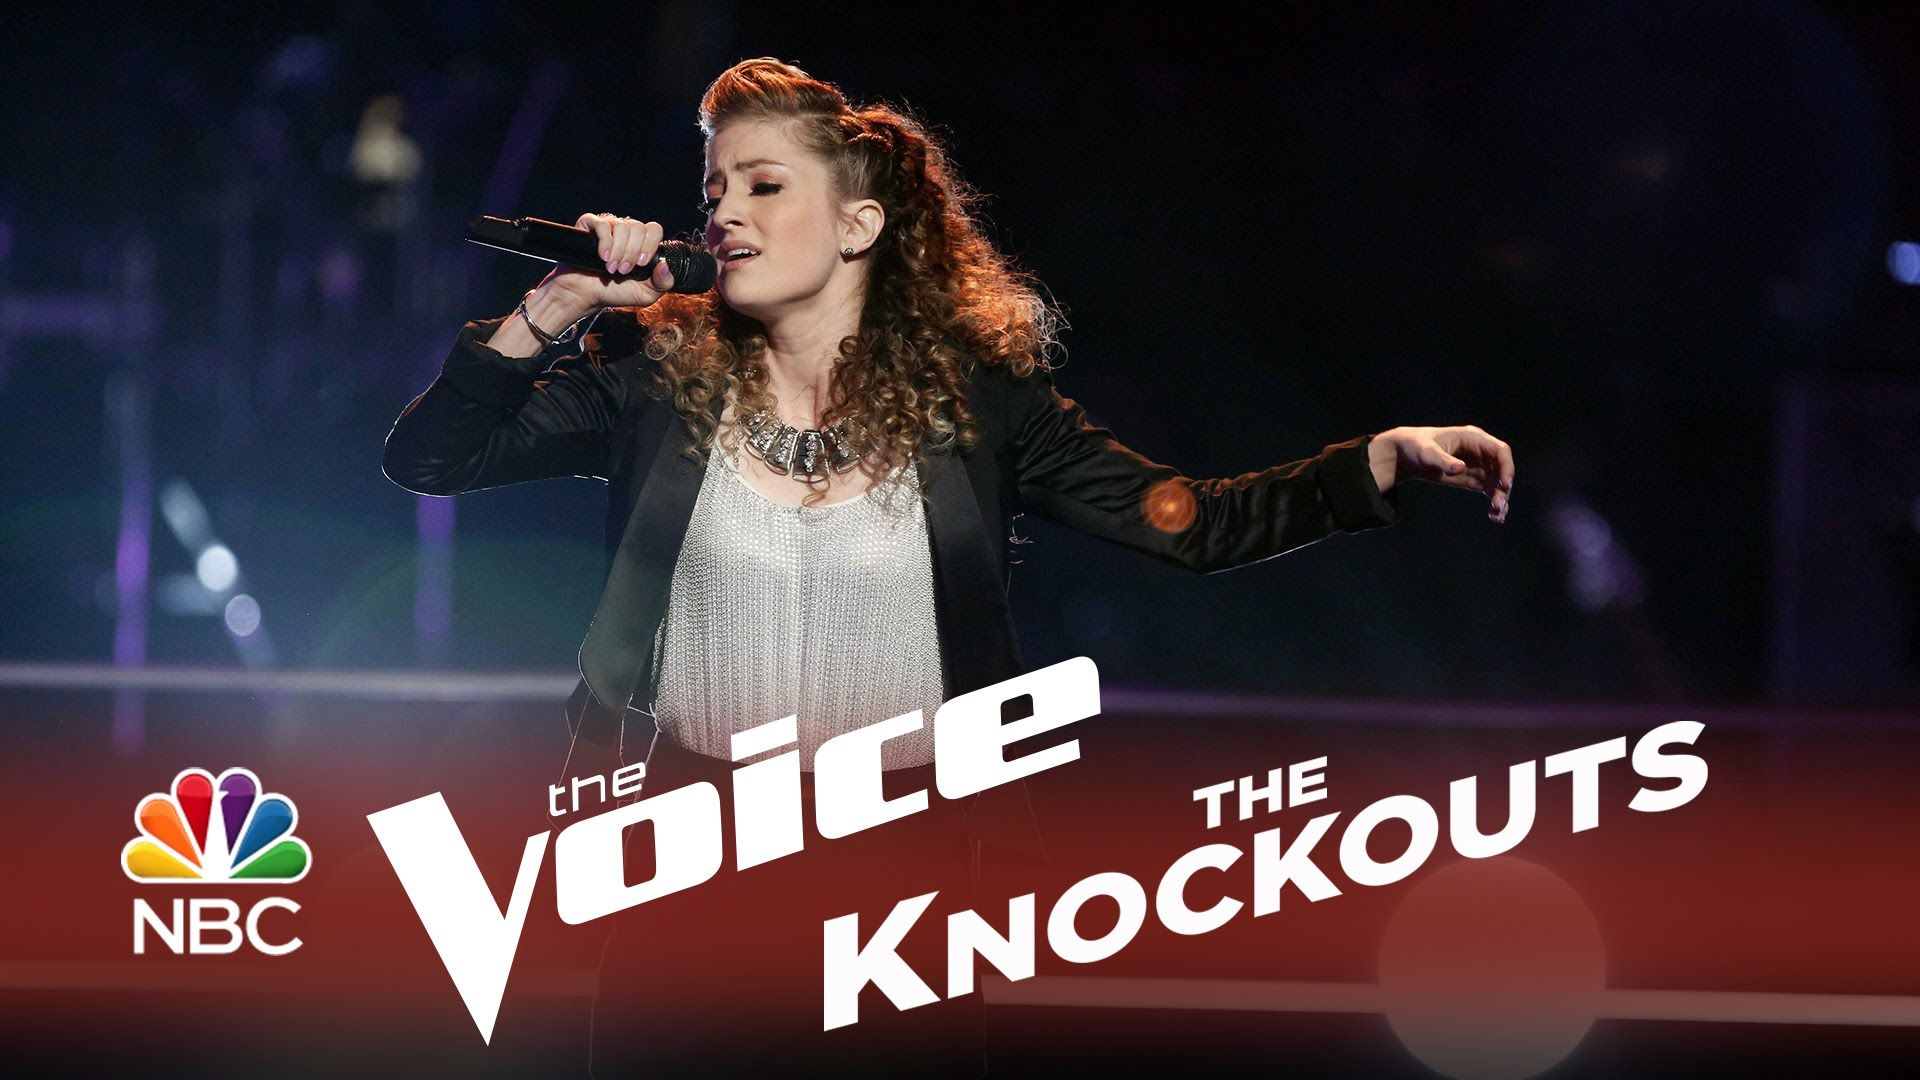 The Voice 2014 Knockouts - Jean Kelley: \